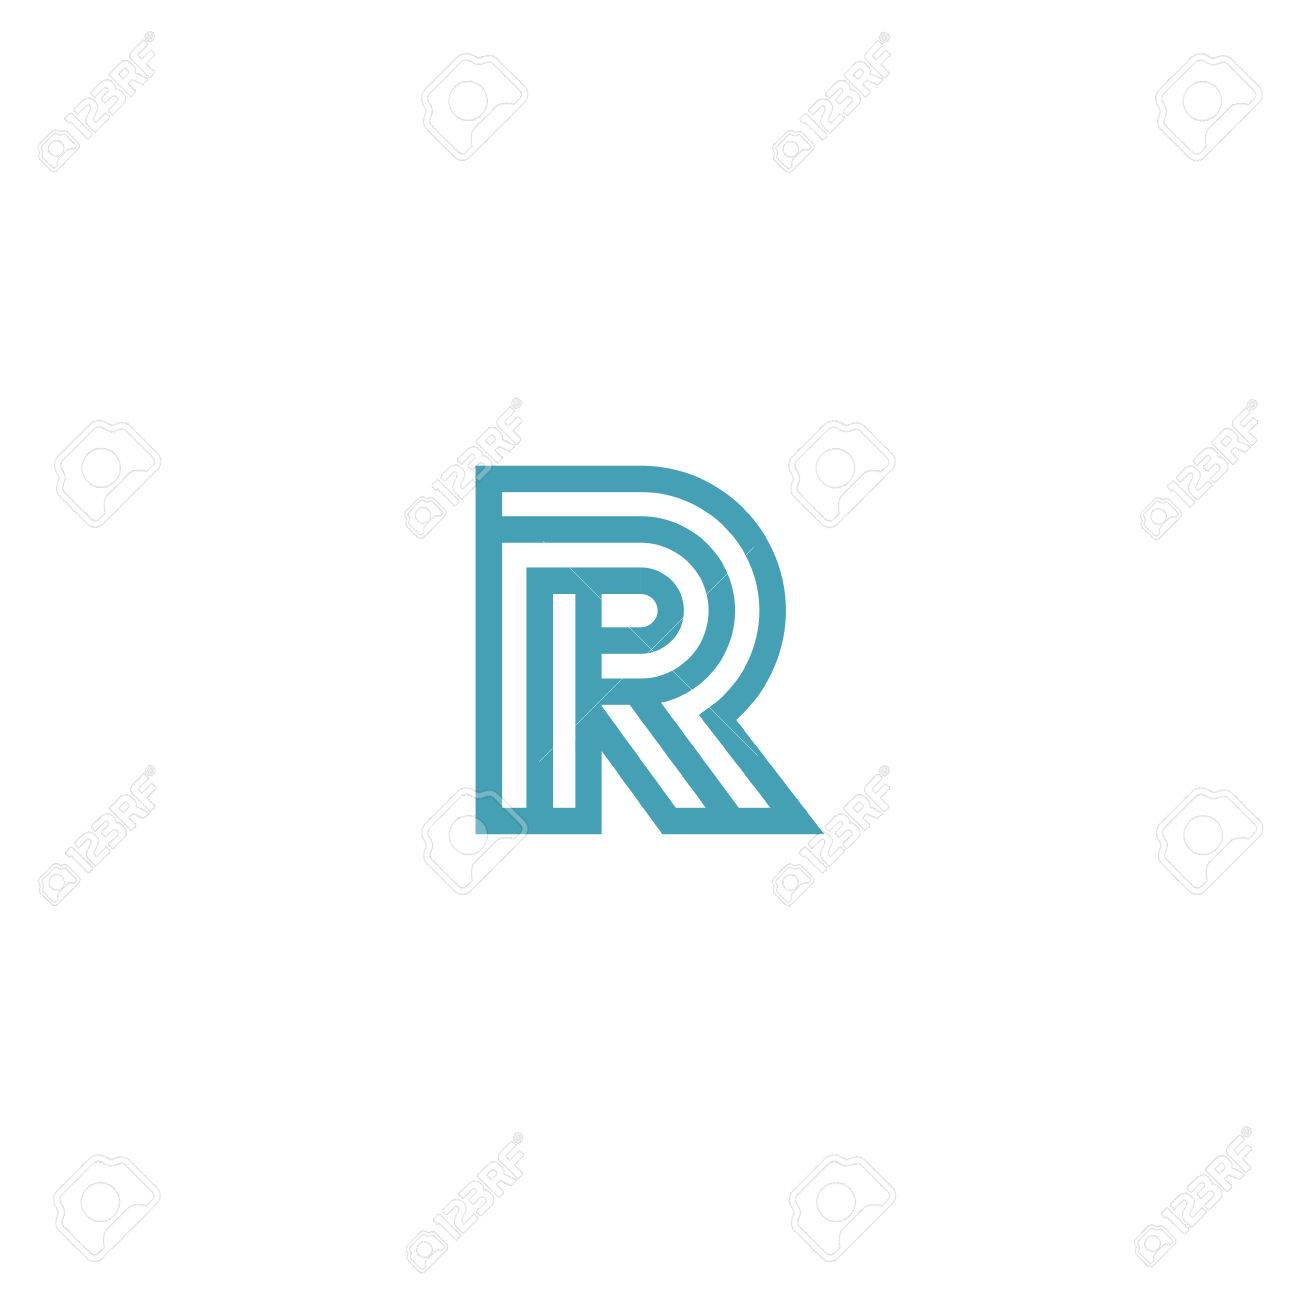 Impossible Letter R Logo Design Vector Template Linear Type